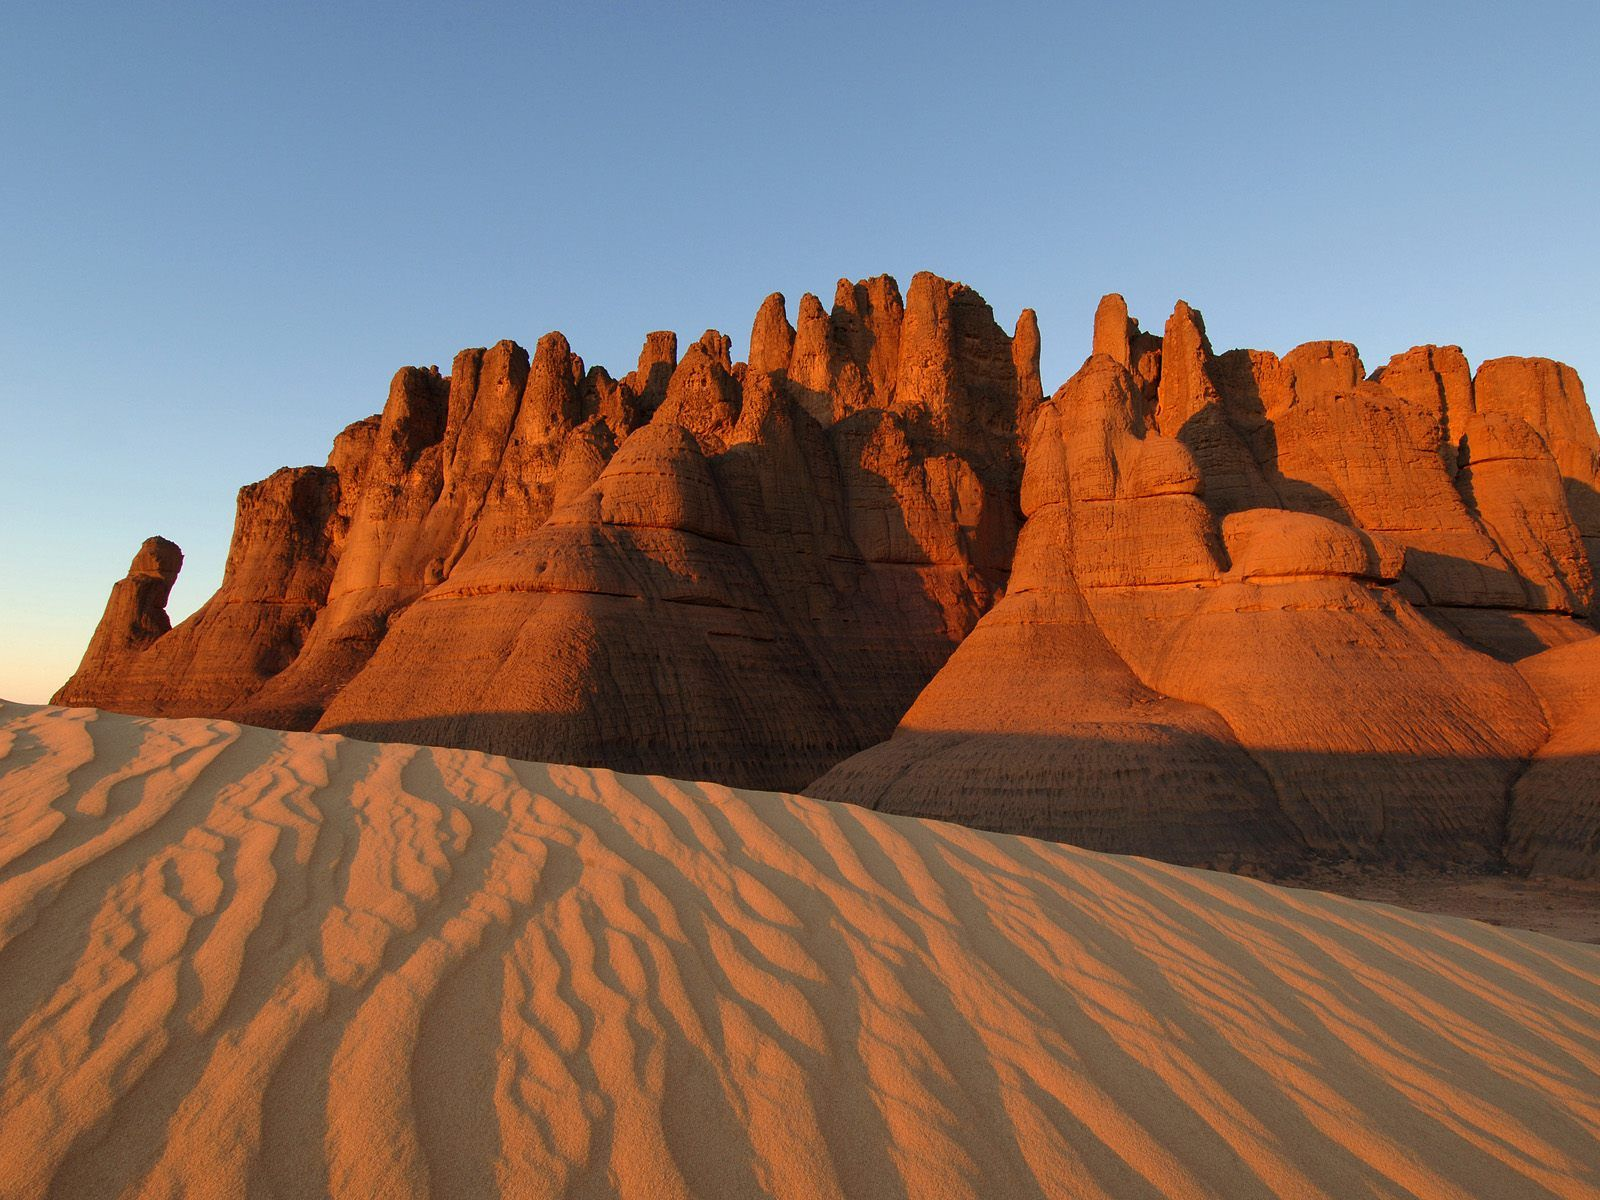 Sahara Desert Facts And Tours Deserts of the world